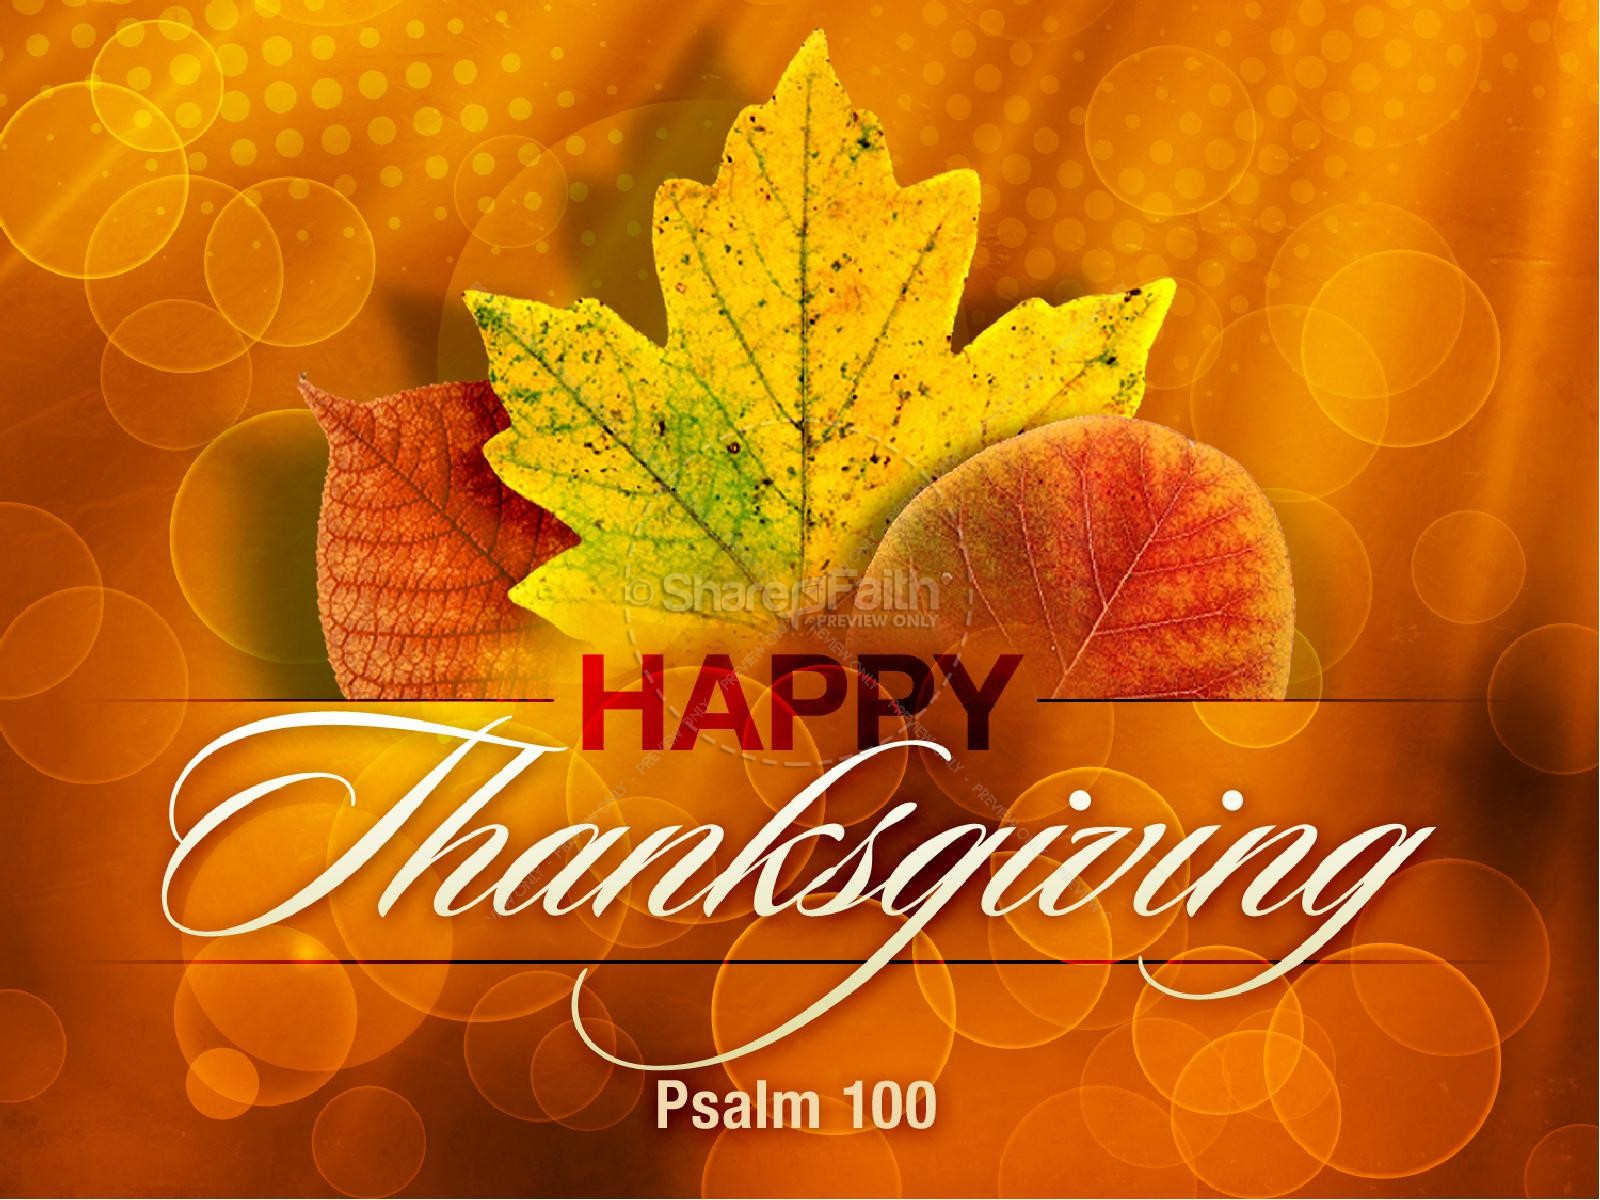 Happy Thanksgiving Worship Background Slide Worship Backgrounds 1600x1200